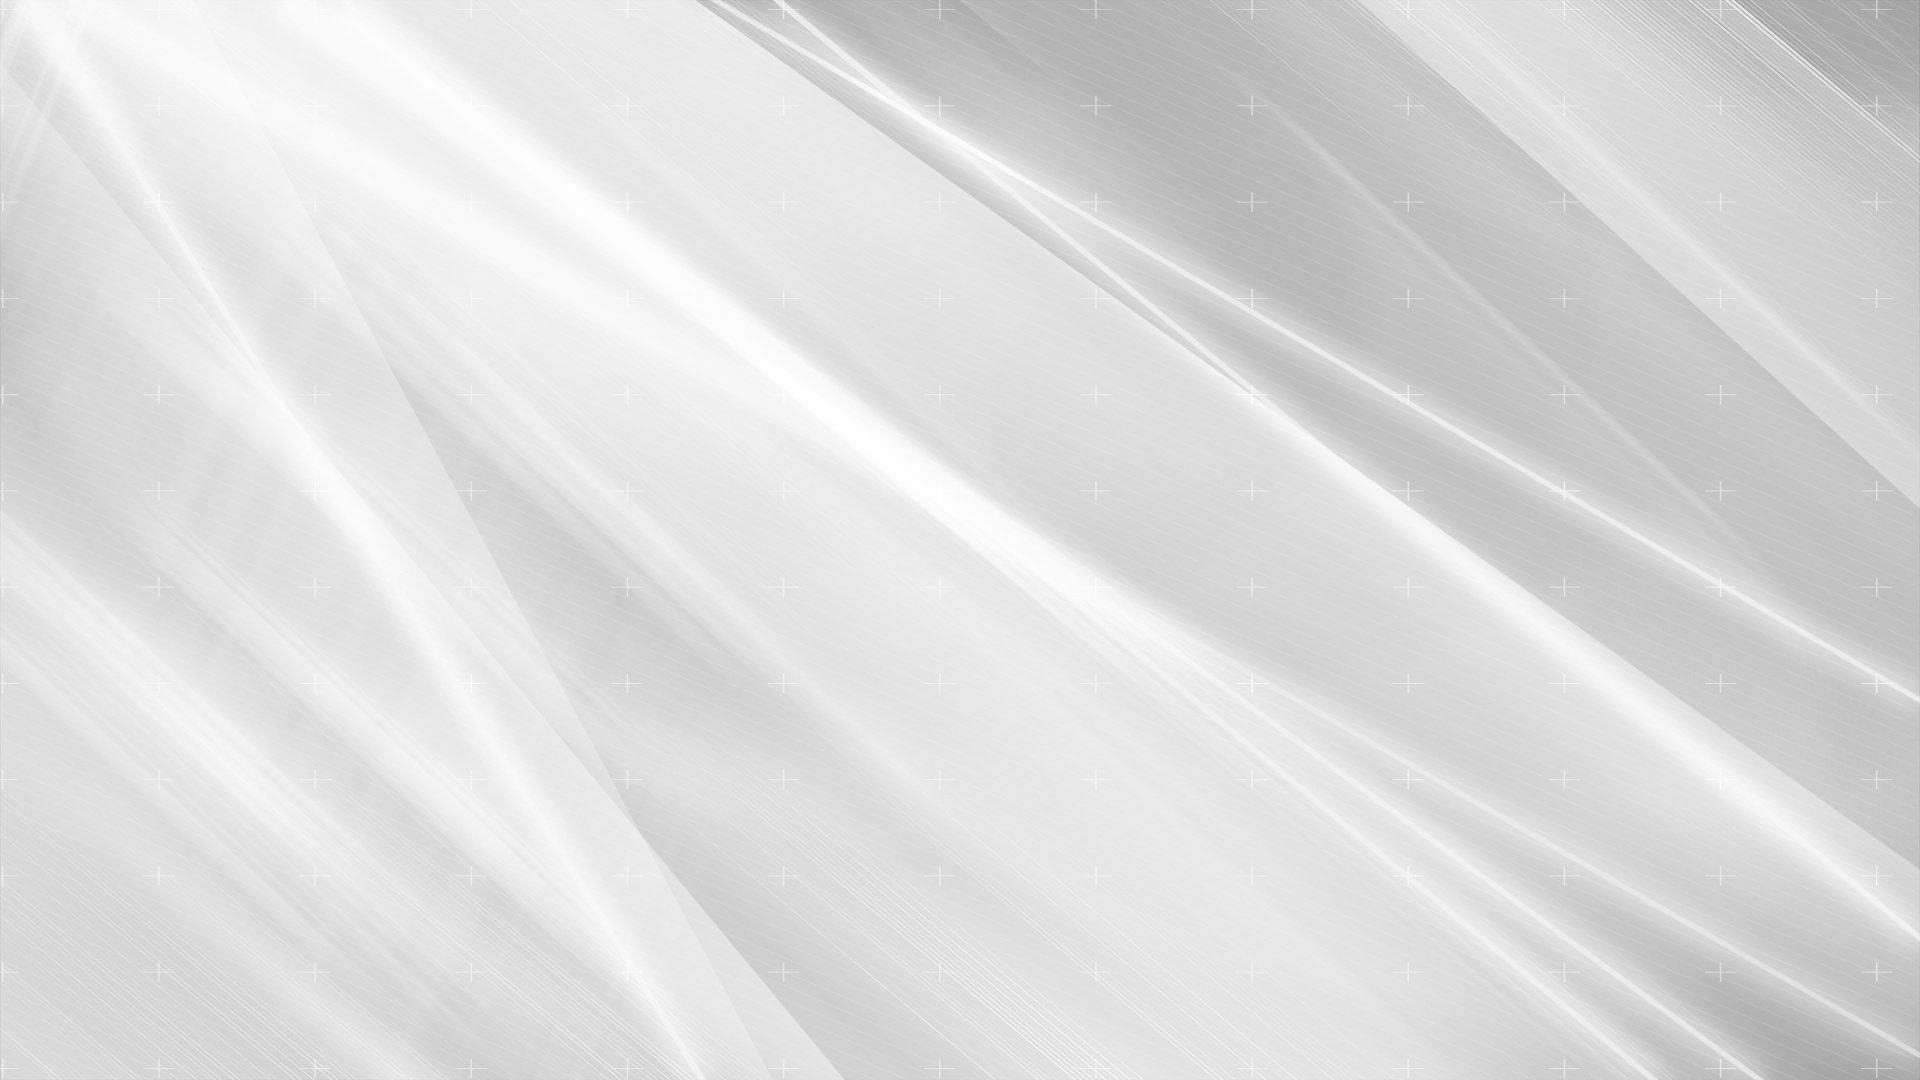 Attachment: white-abstract-75-wallpaper-background-hd